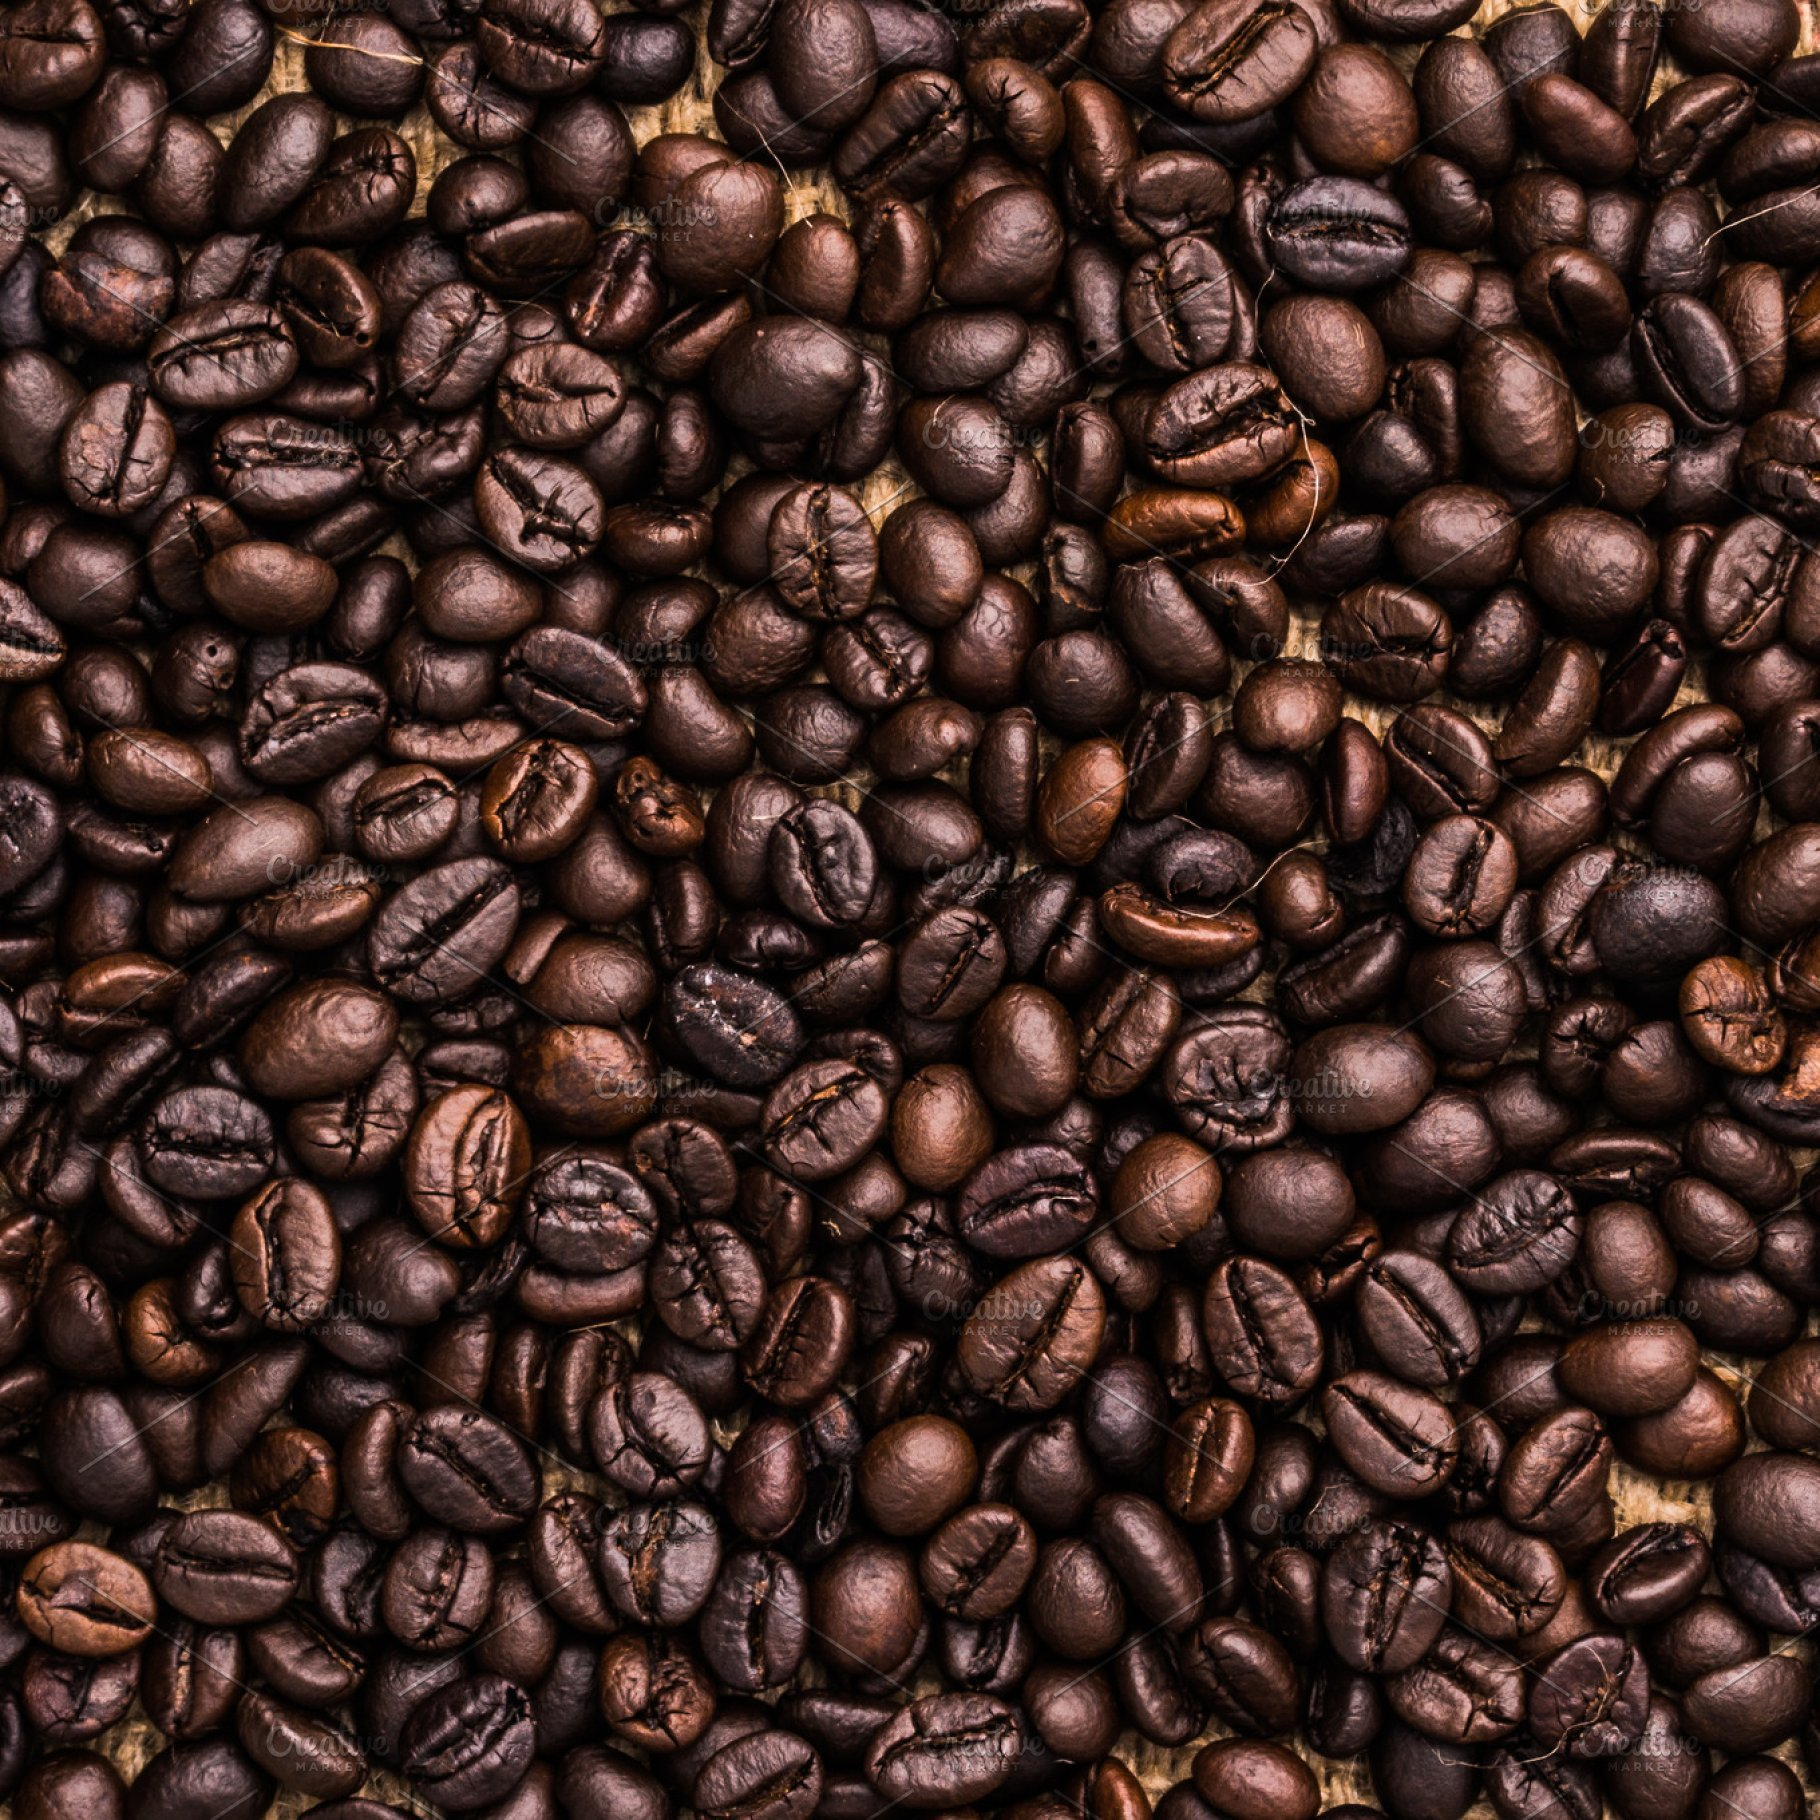 Roasted coffee bean background High Quality Food Images 1820x1820